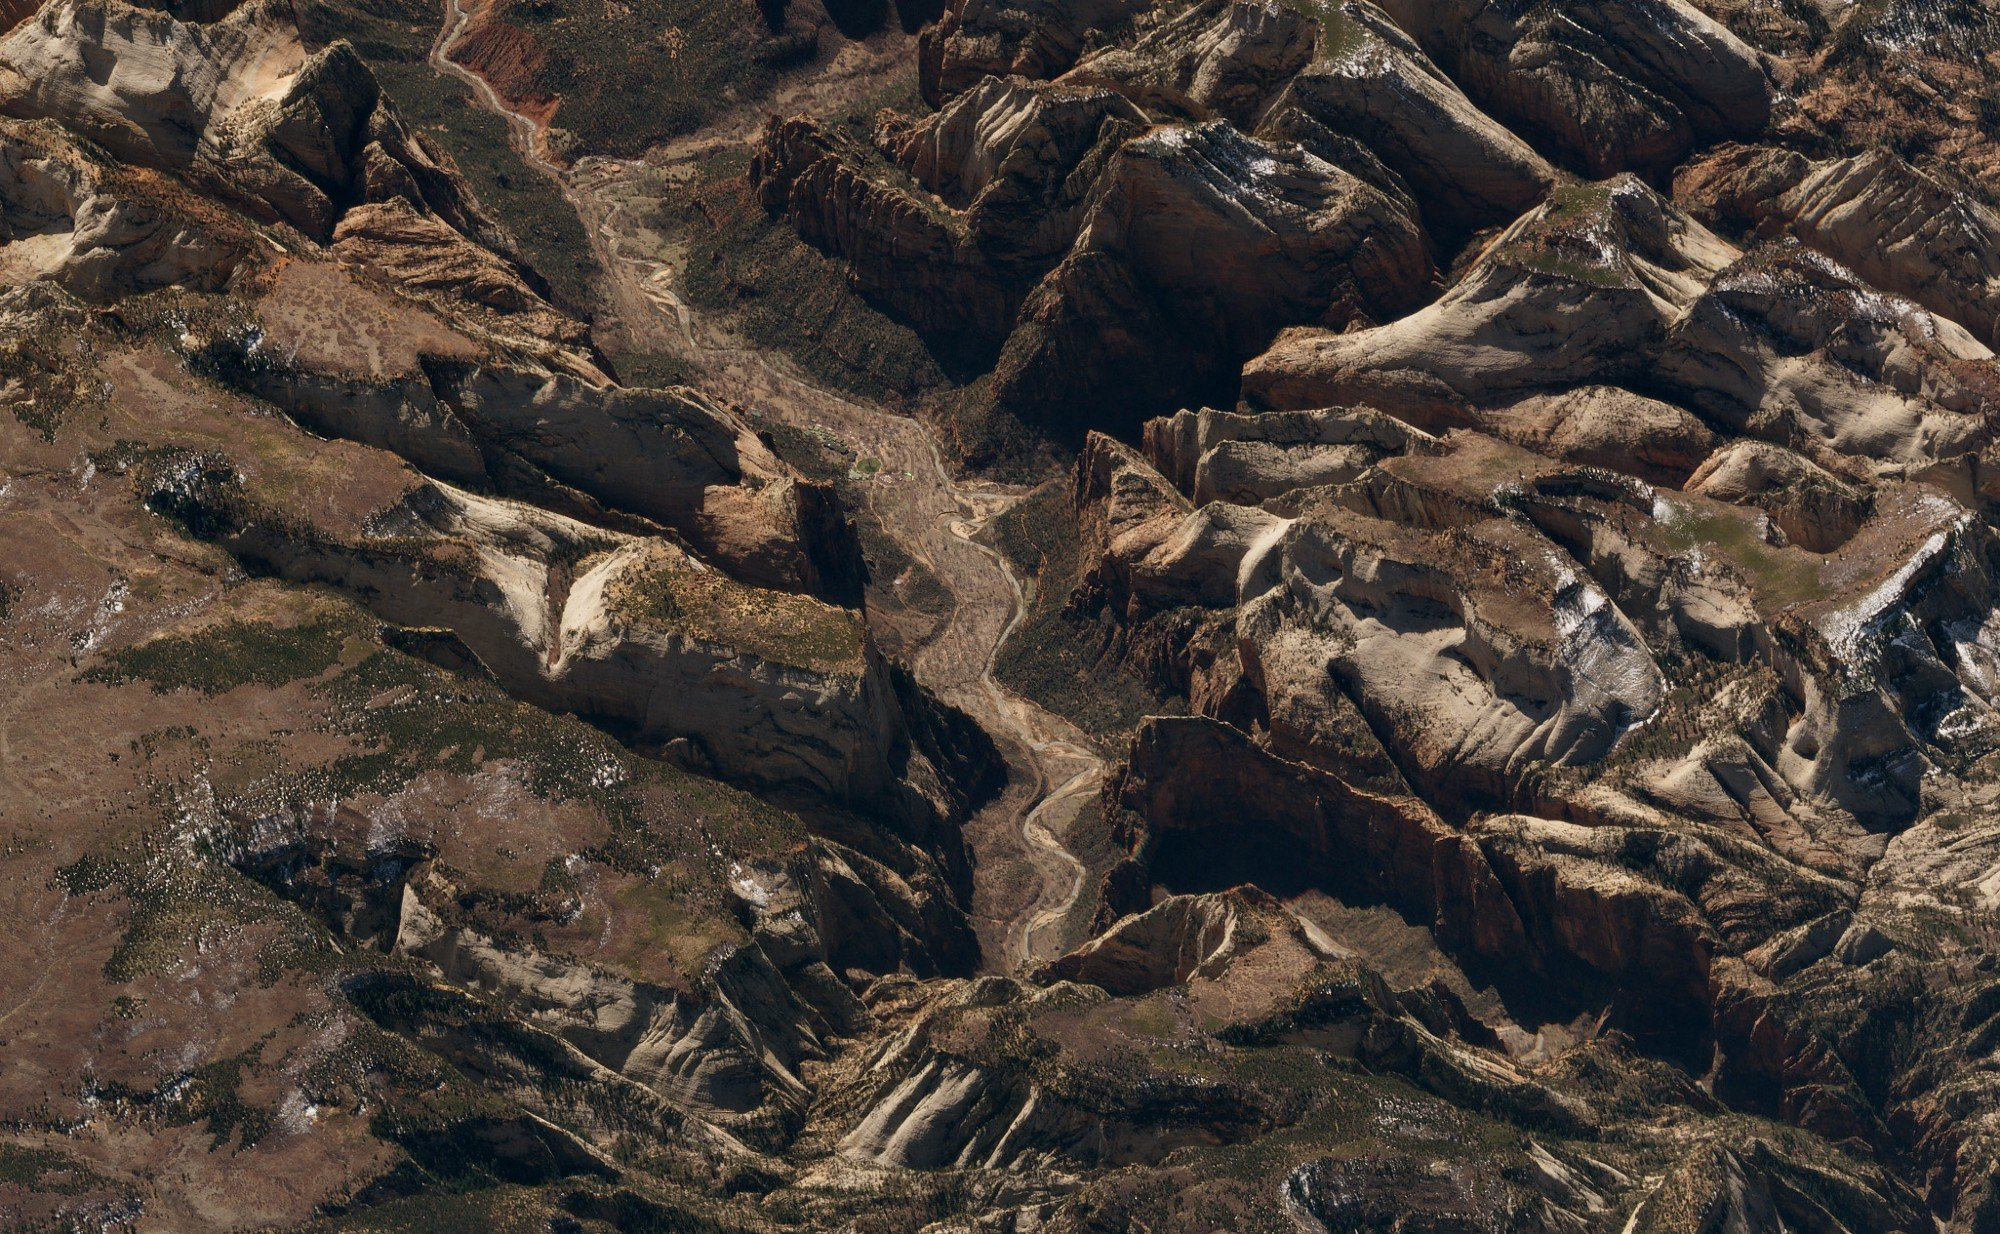 Zion National Park. United States. March 21, 2018. Image ©2018 Planet Labs, Inc. cc-by-sa4.0.